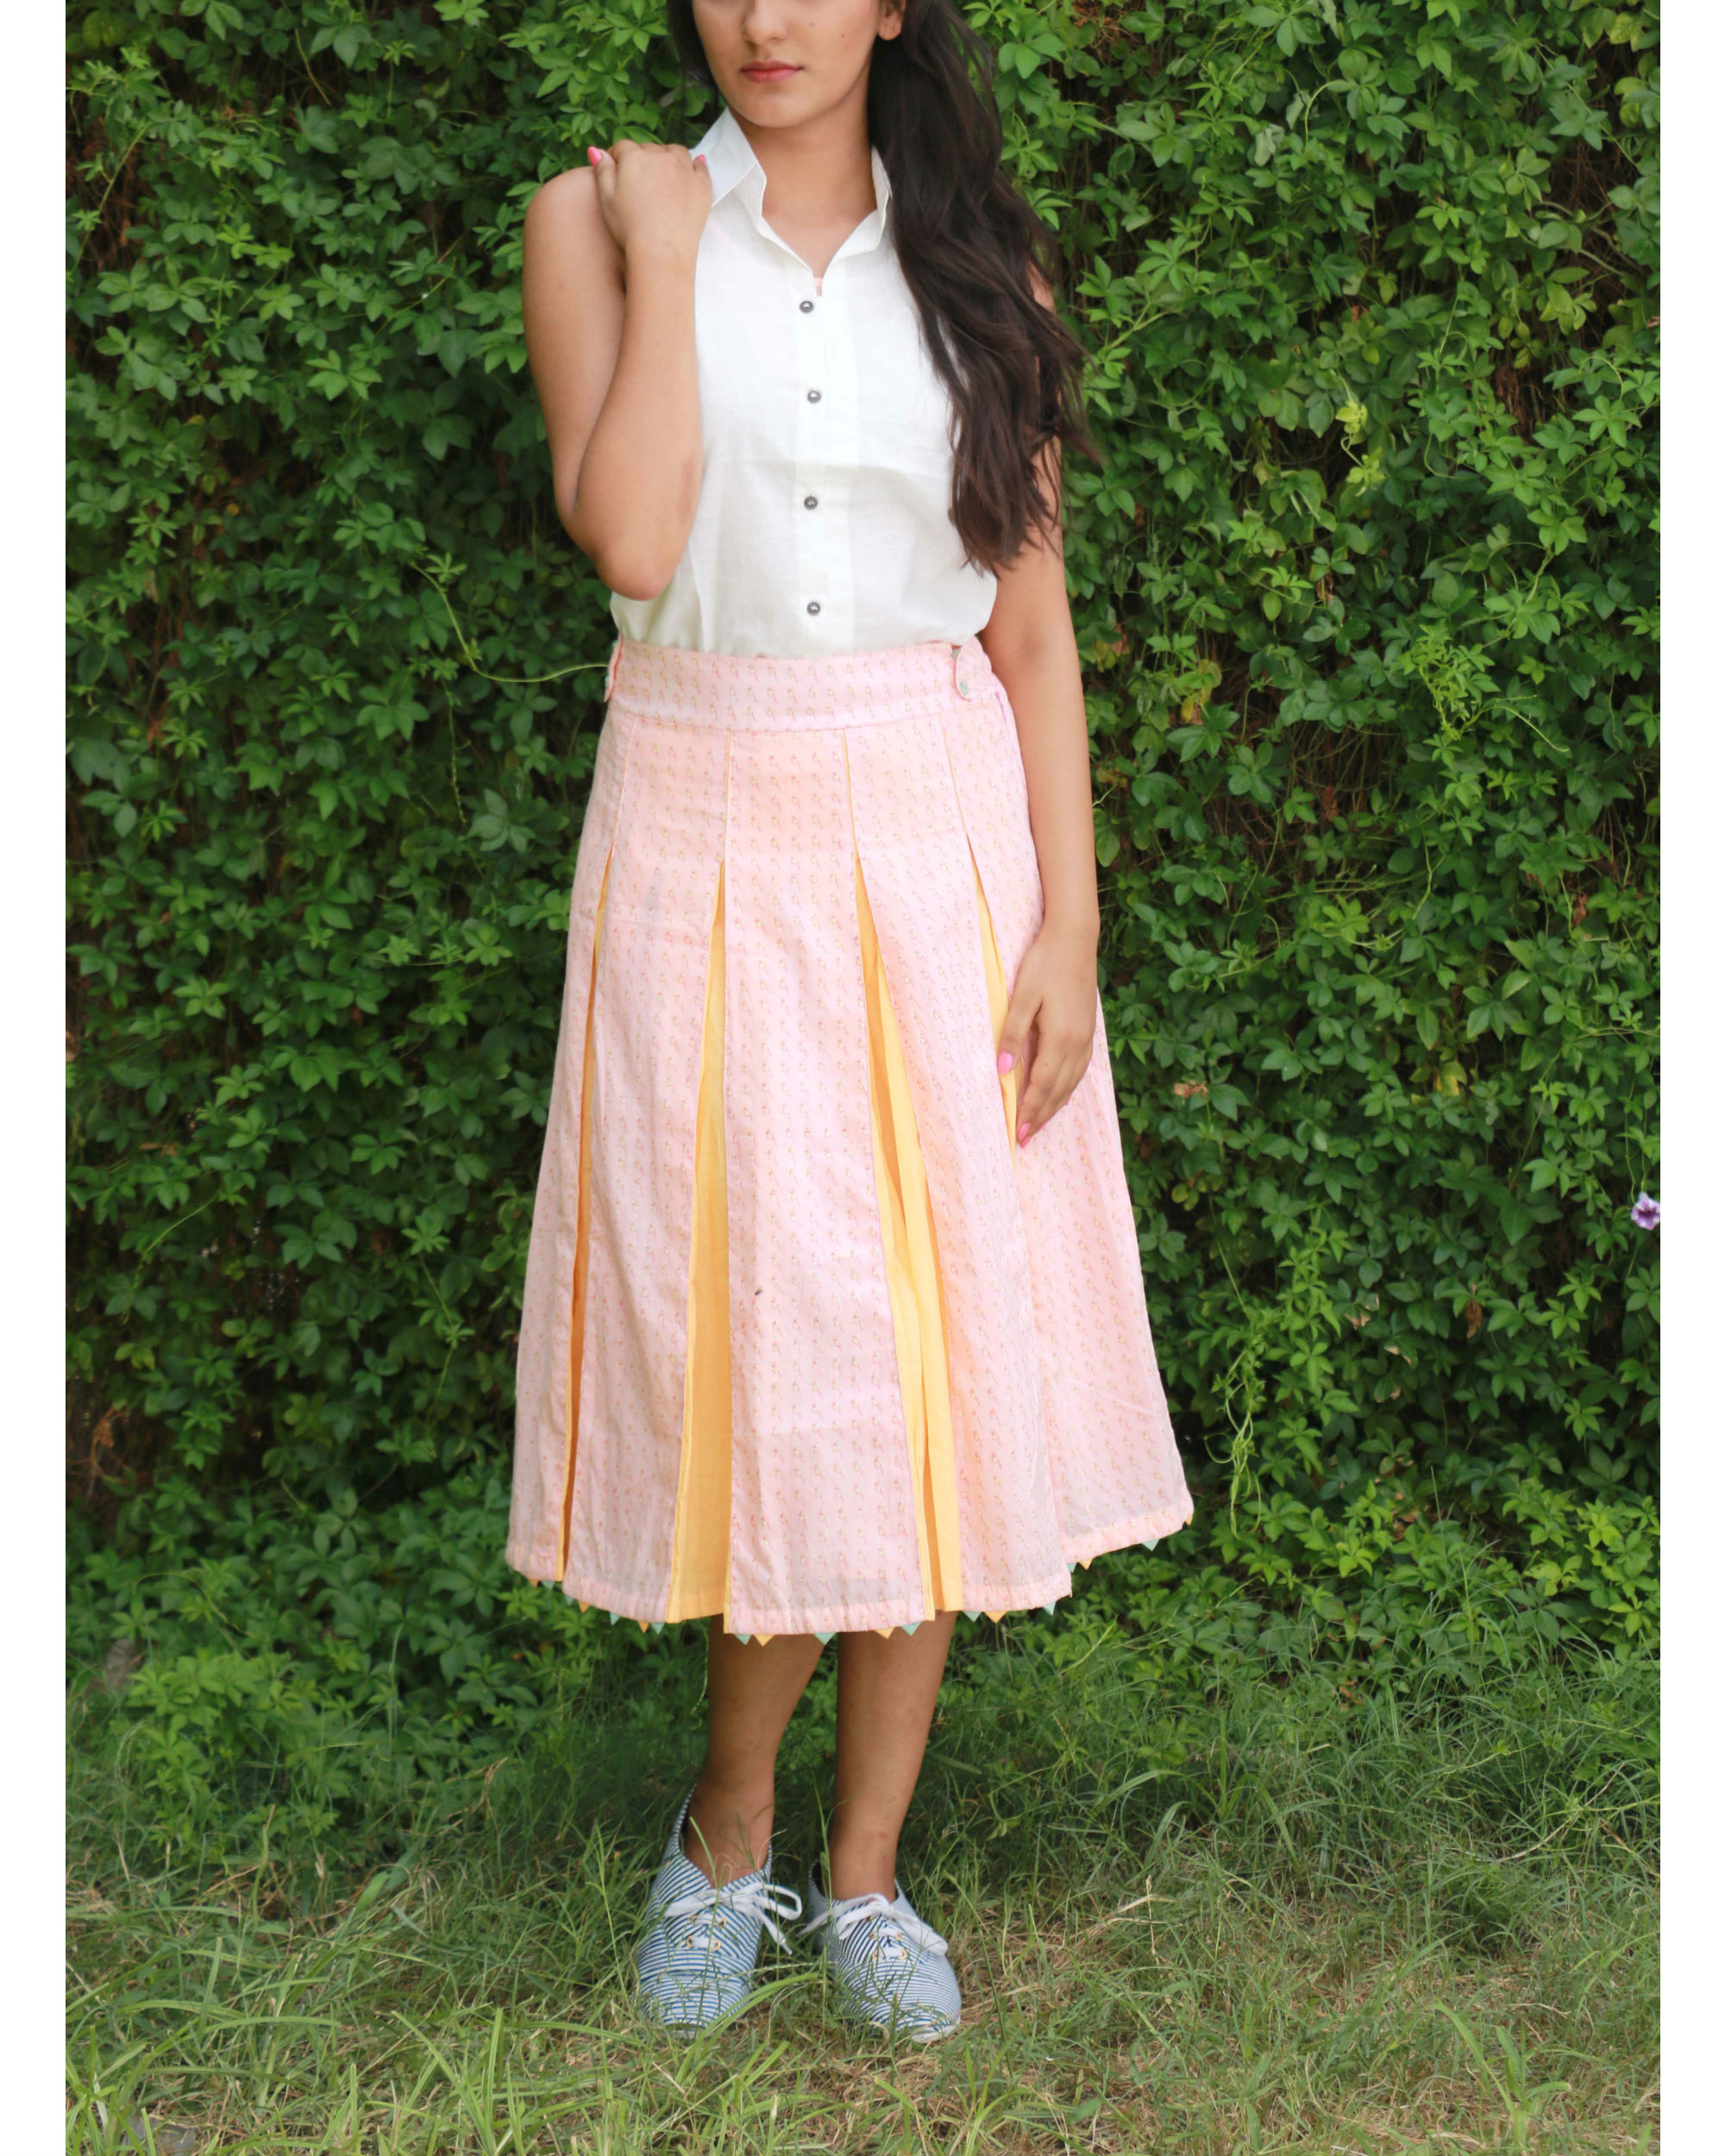 Peach box pleated skirt